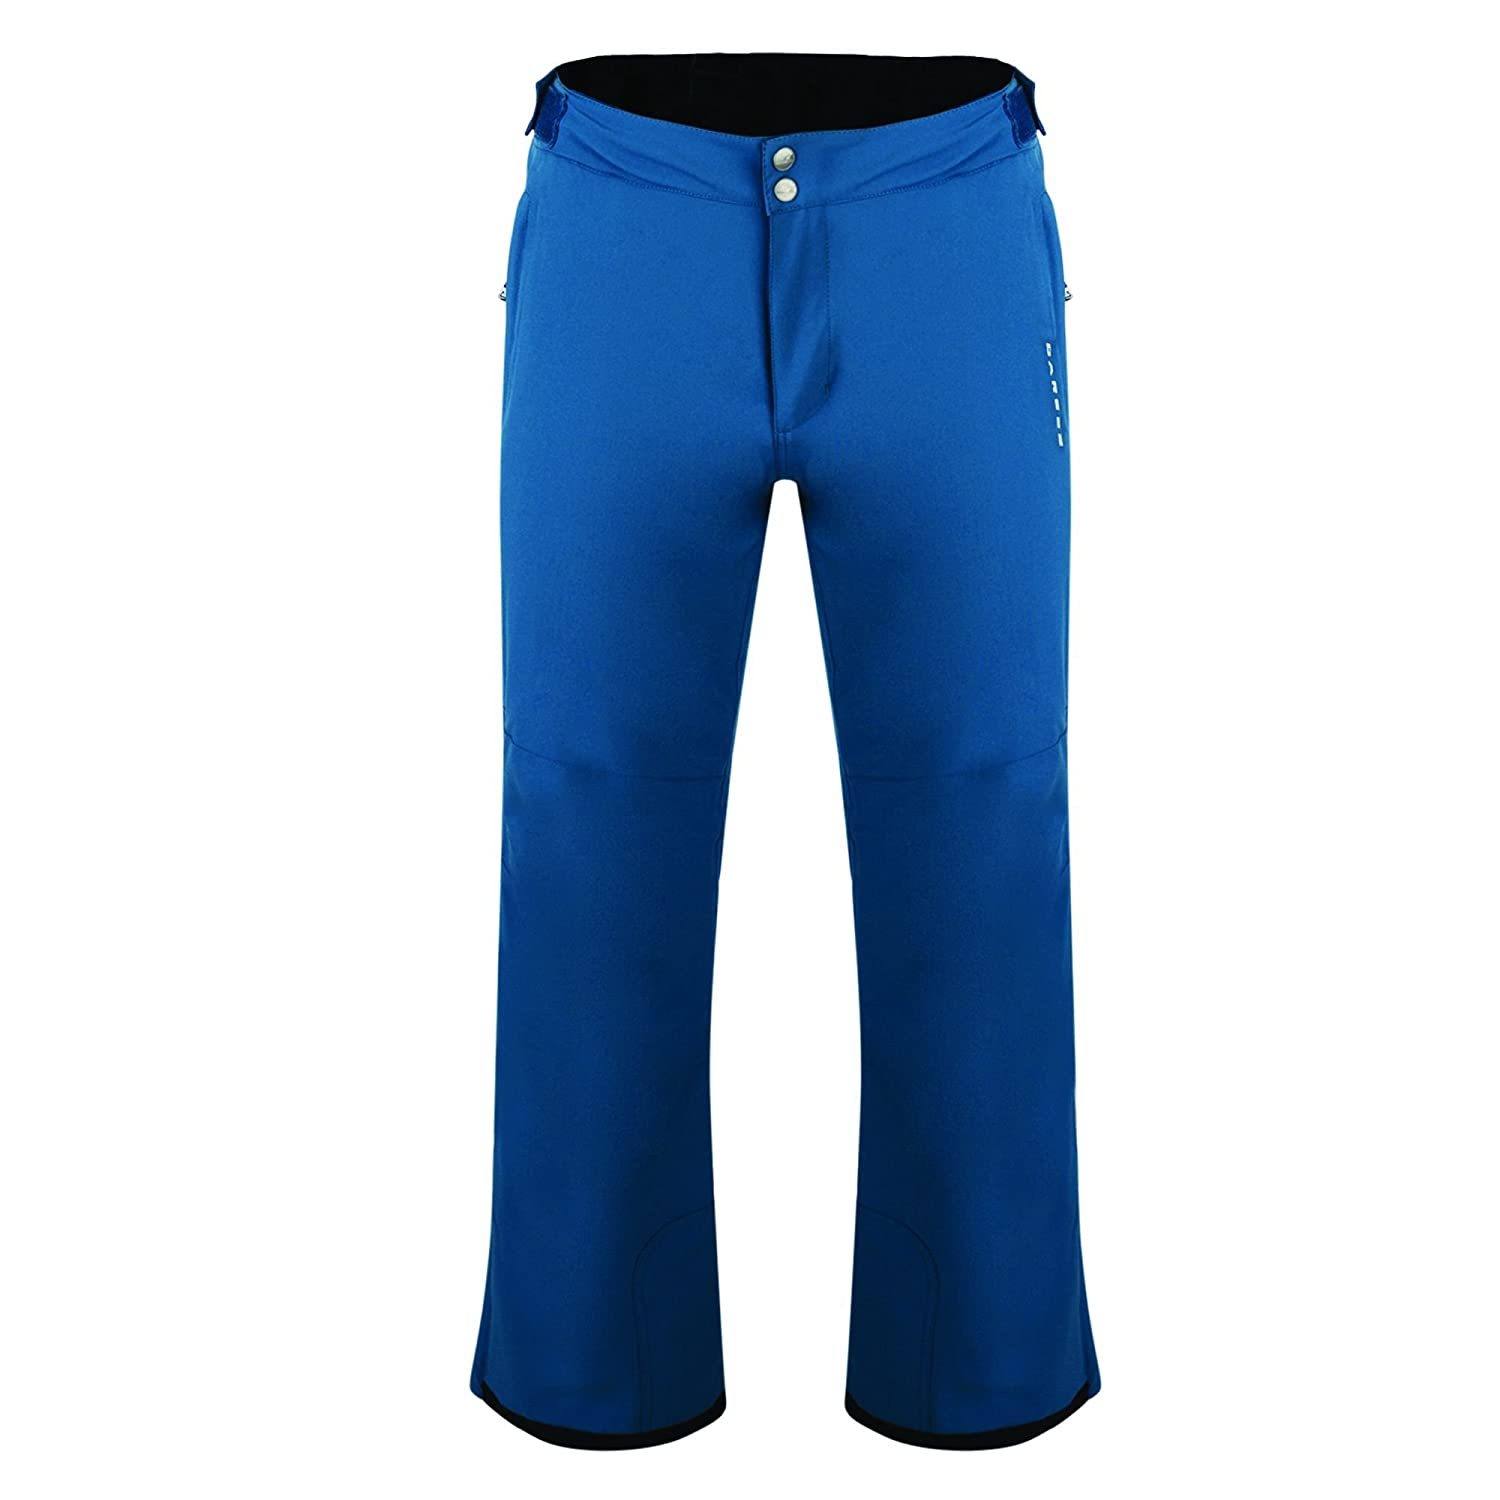 Dare 2b Mens Certify Pant Ii Waterproof Breathable Salopettes